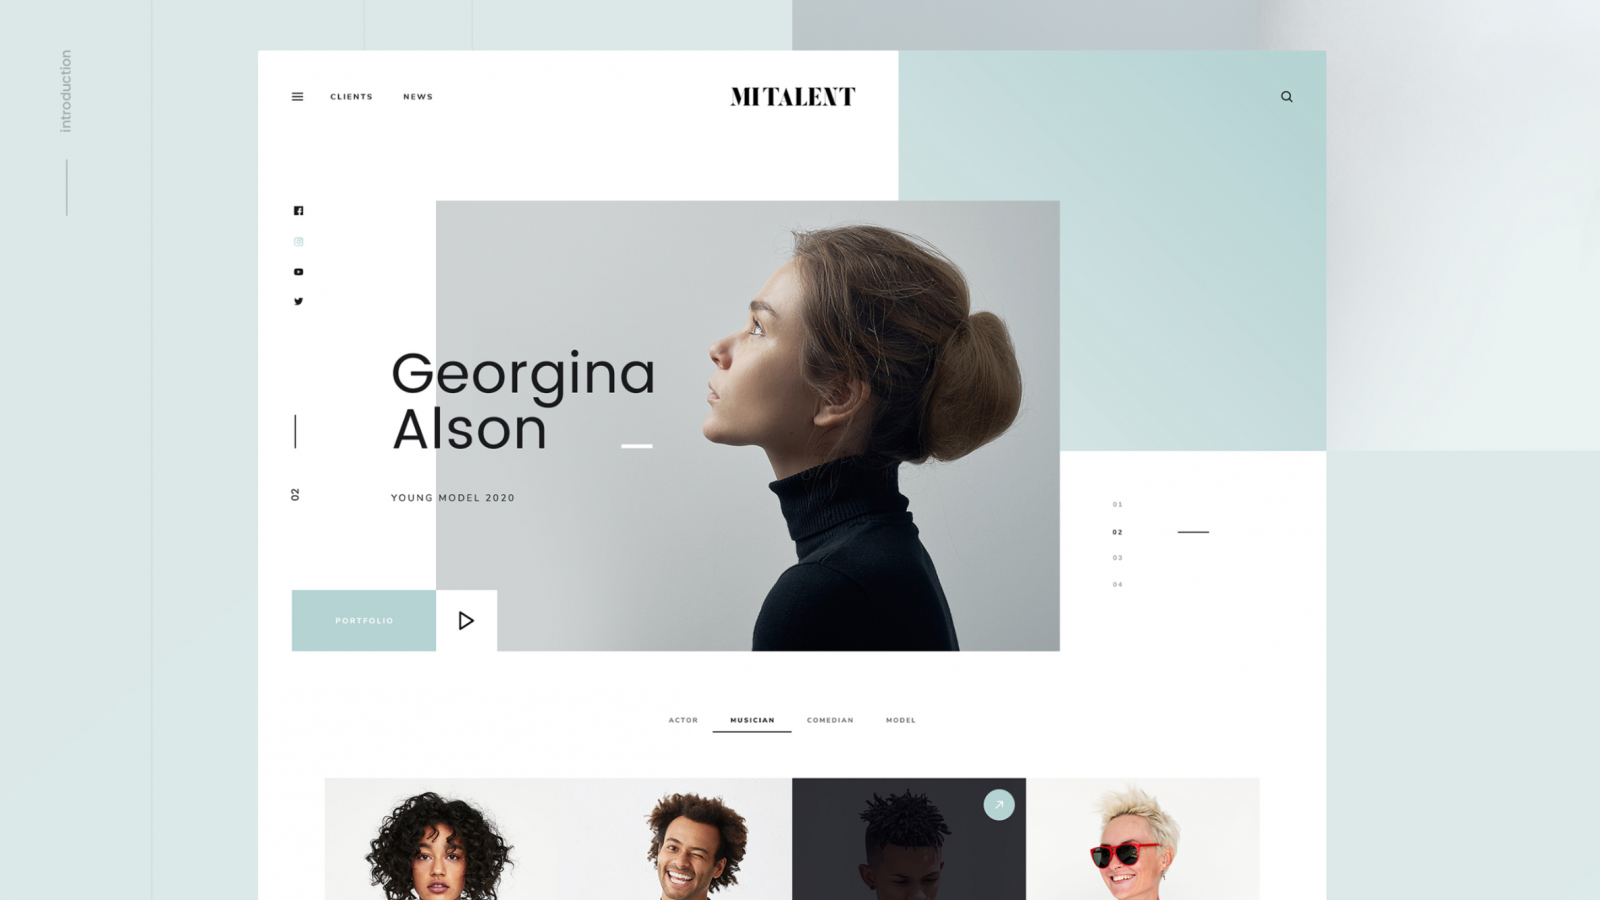 Web Design: Super Stylish Free Template